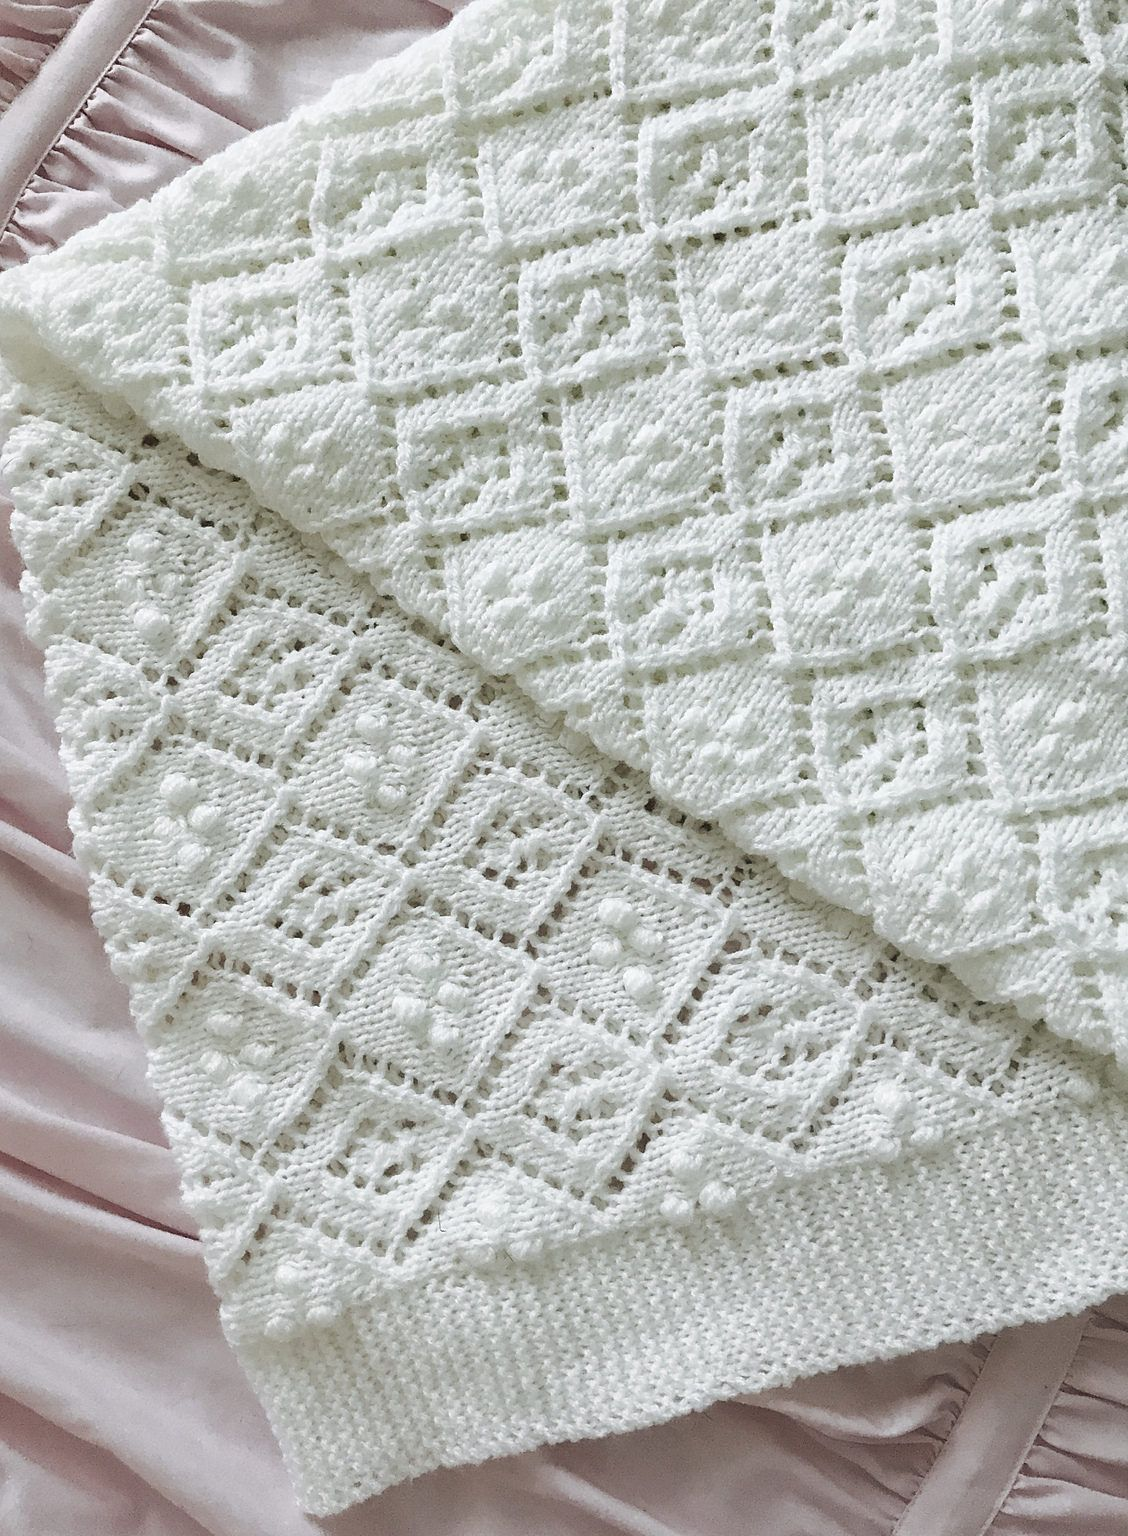 Knitting Crocheting : Free knitting pattern for thine receiving blanket